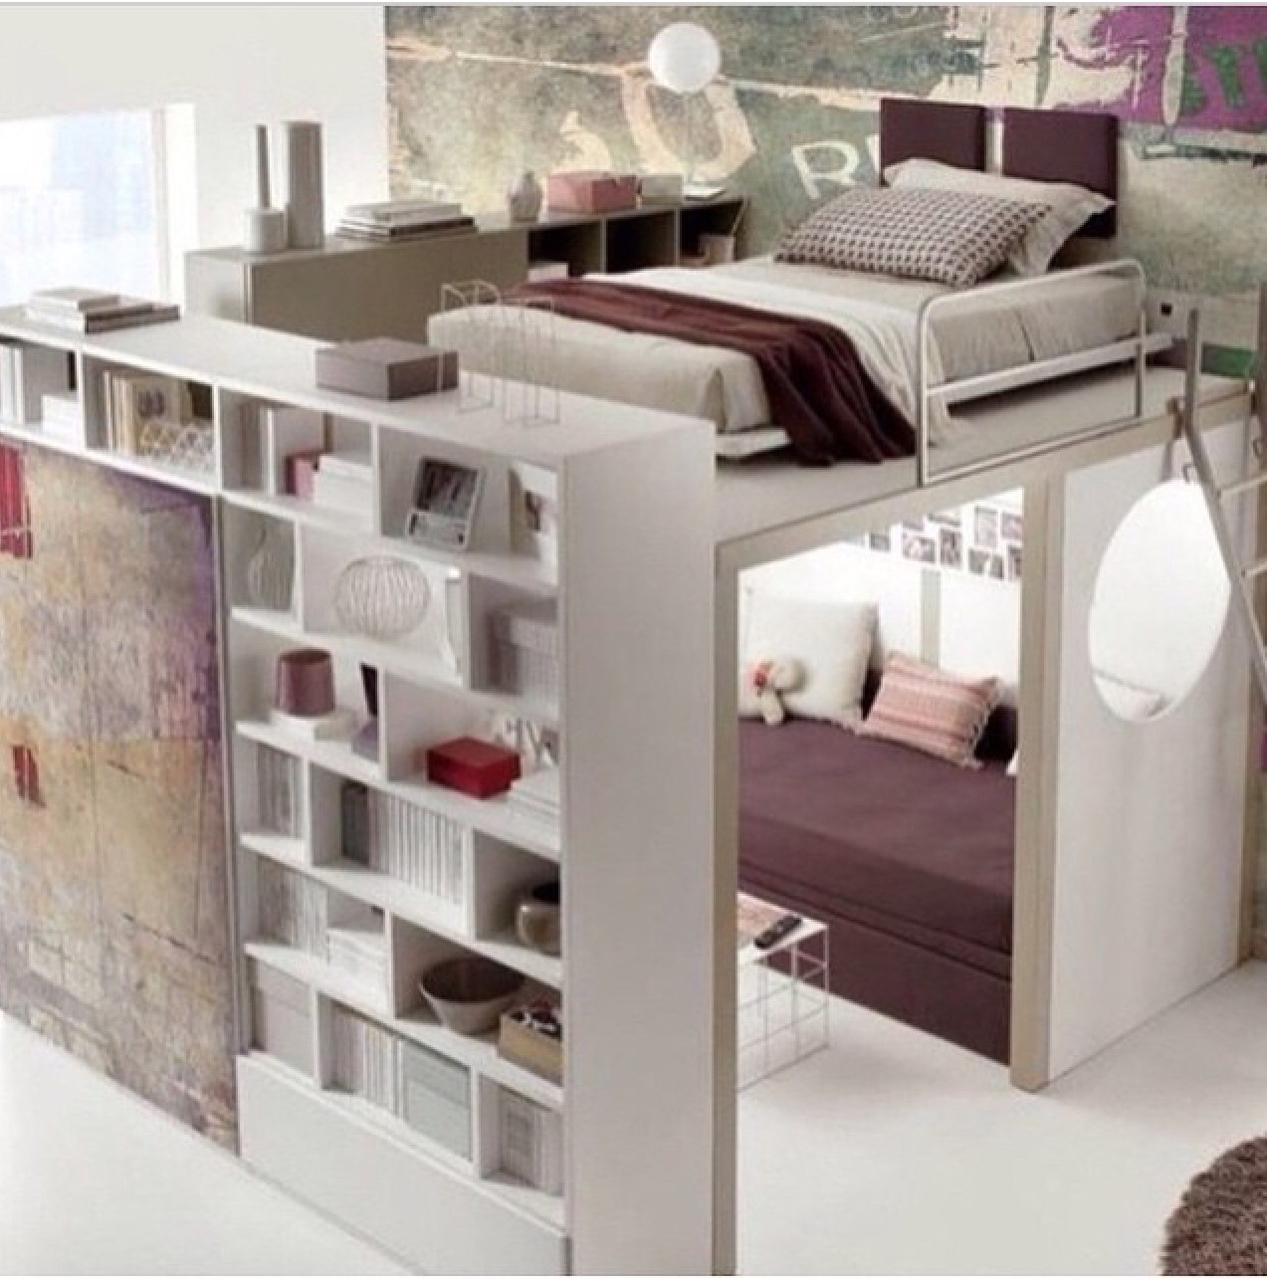 Deco Chambre Serena Gossip Girl https://weheartit/entry/175621078 https://data.whicdn